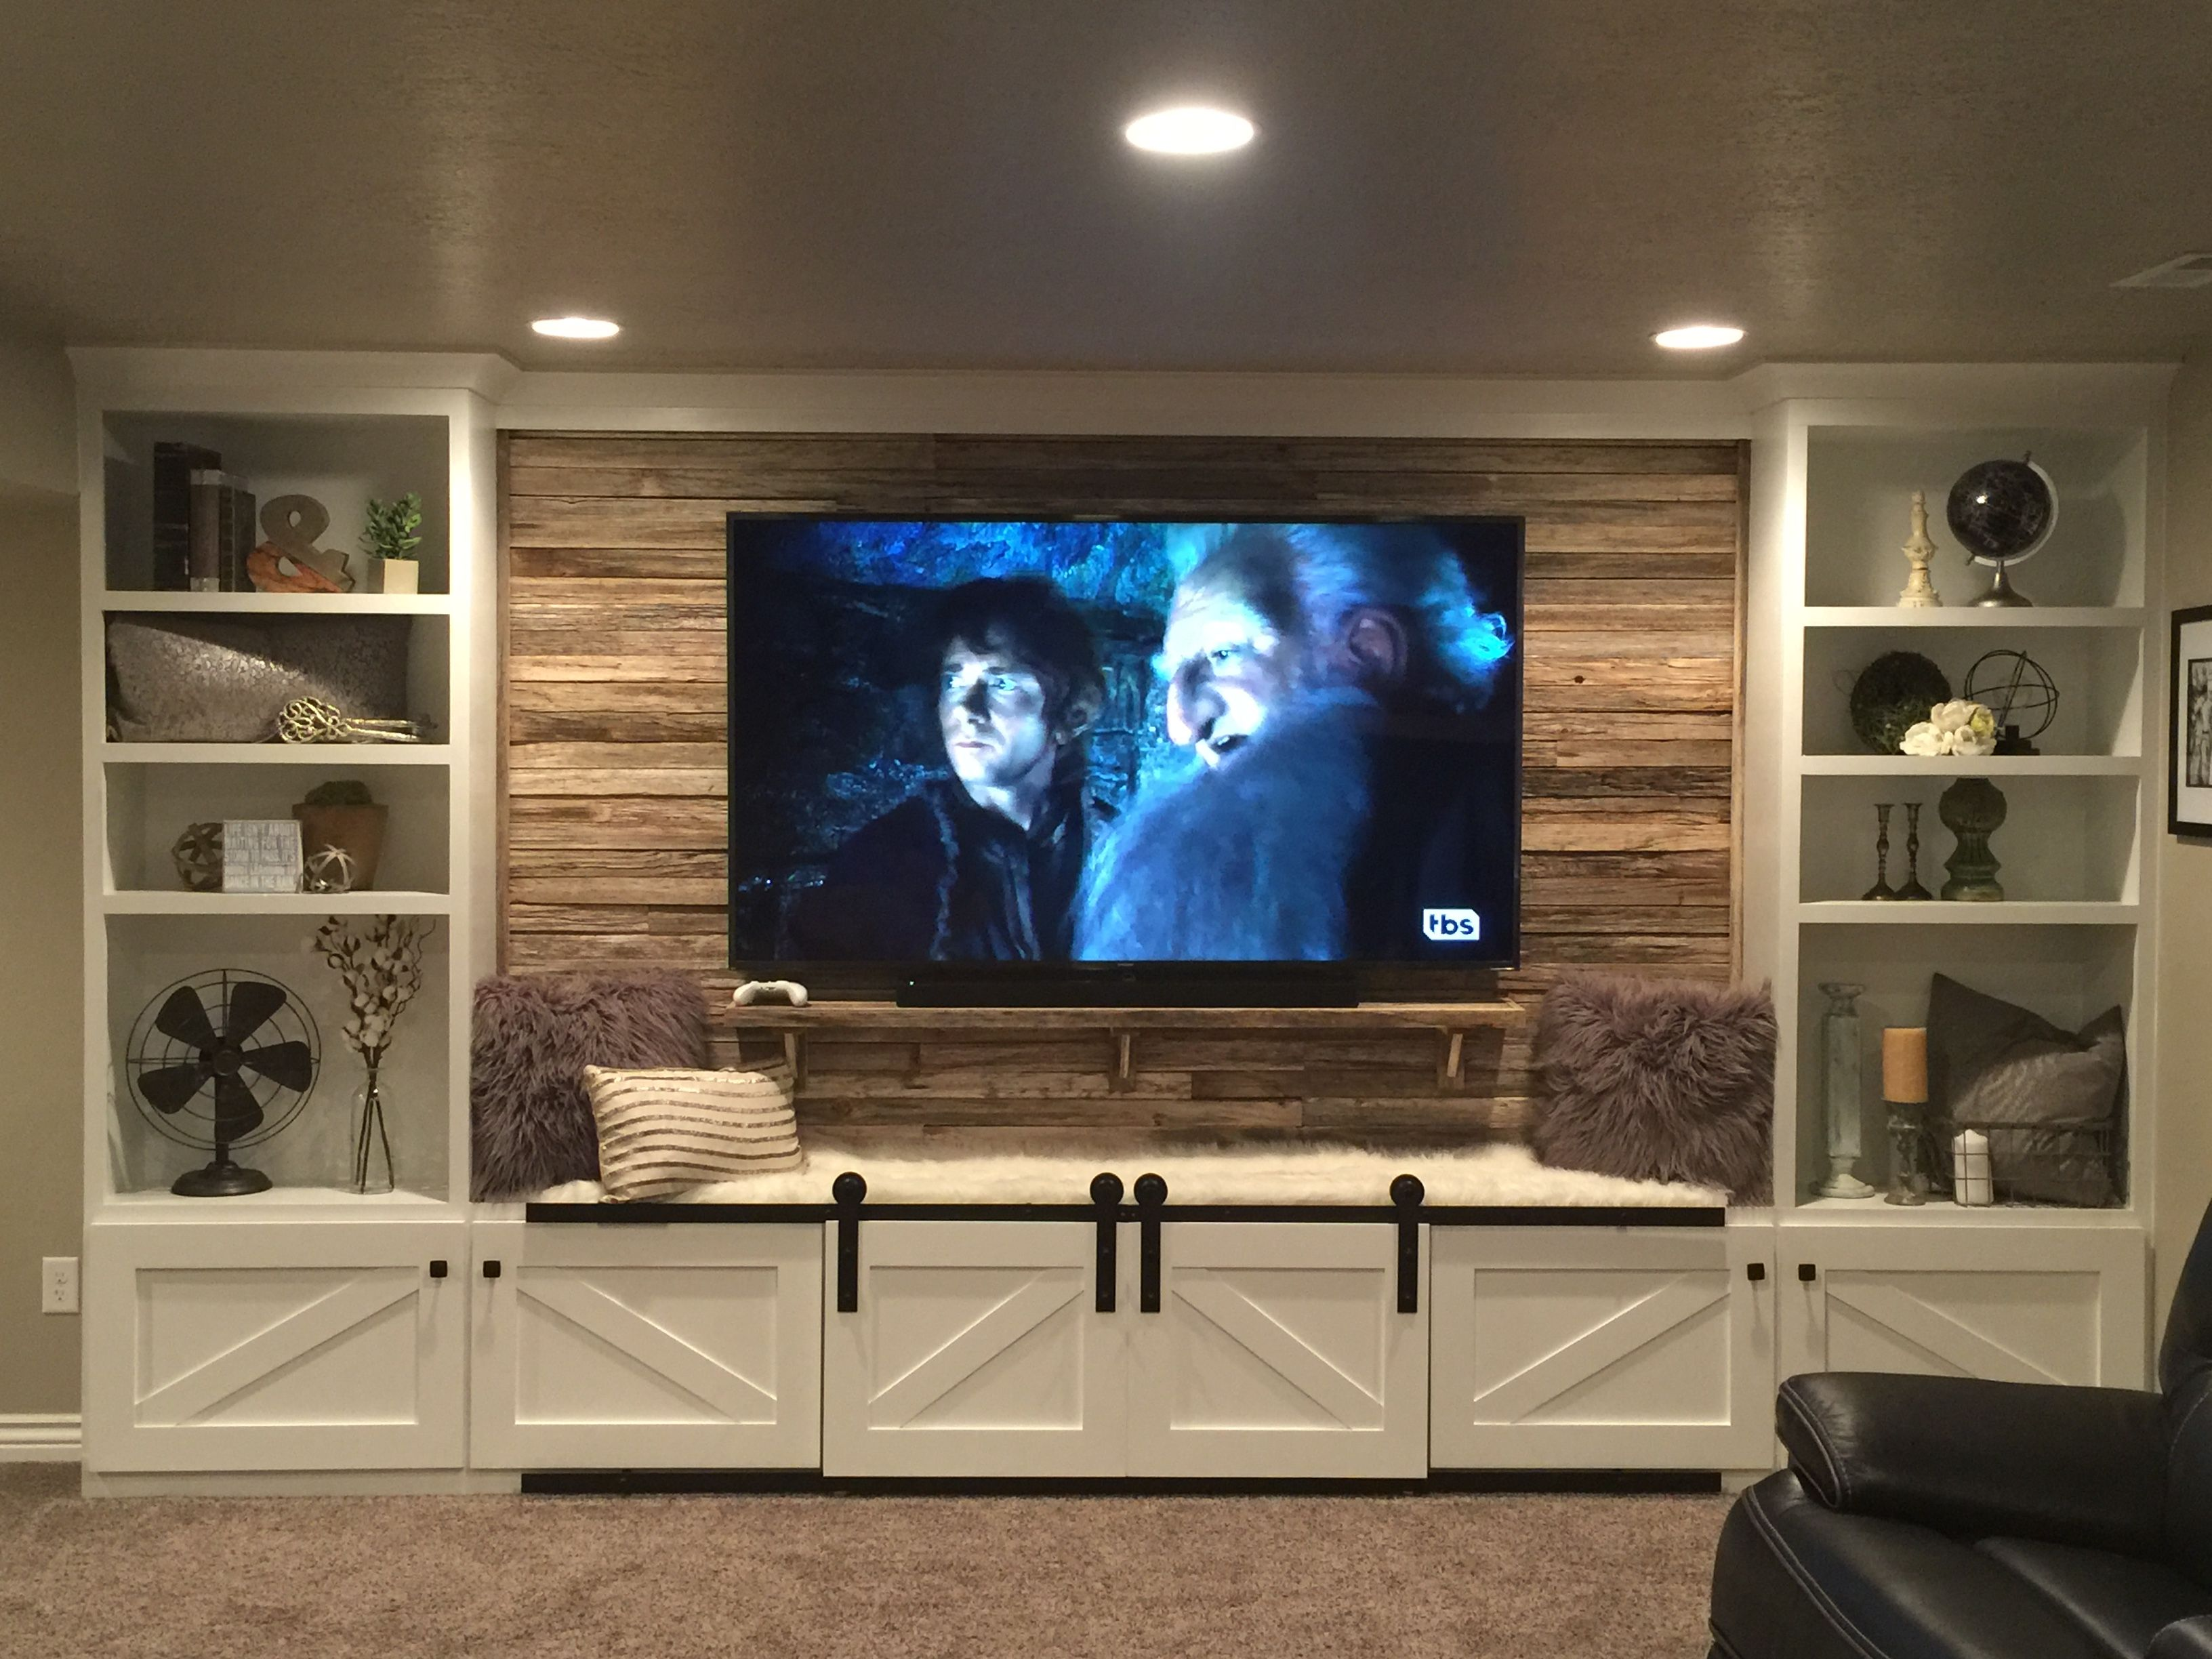 17 Diy Entertainment Center Ideas And Designs For Your New Home Wood Doors Barn Wood And Barn